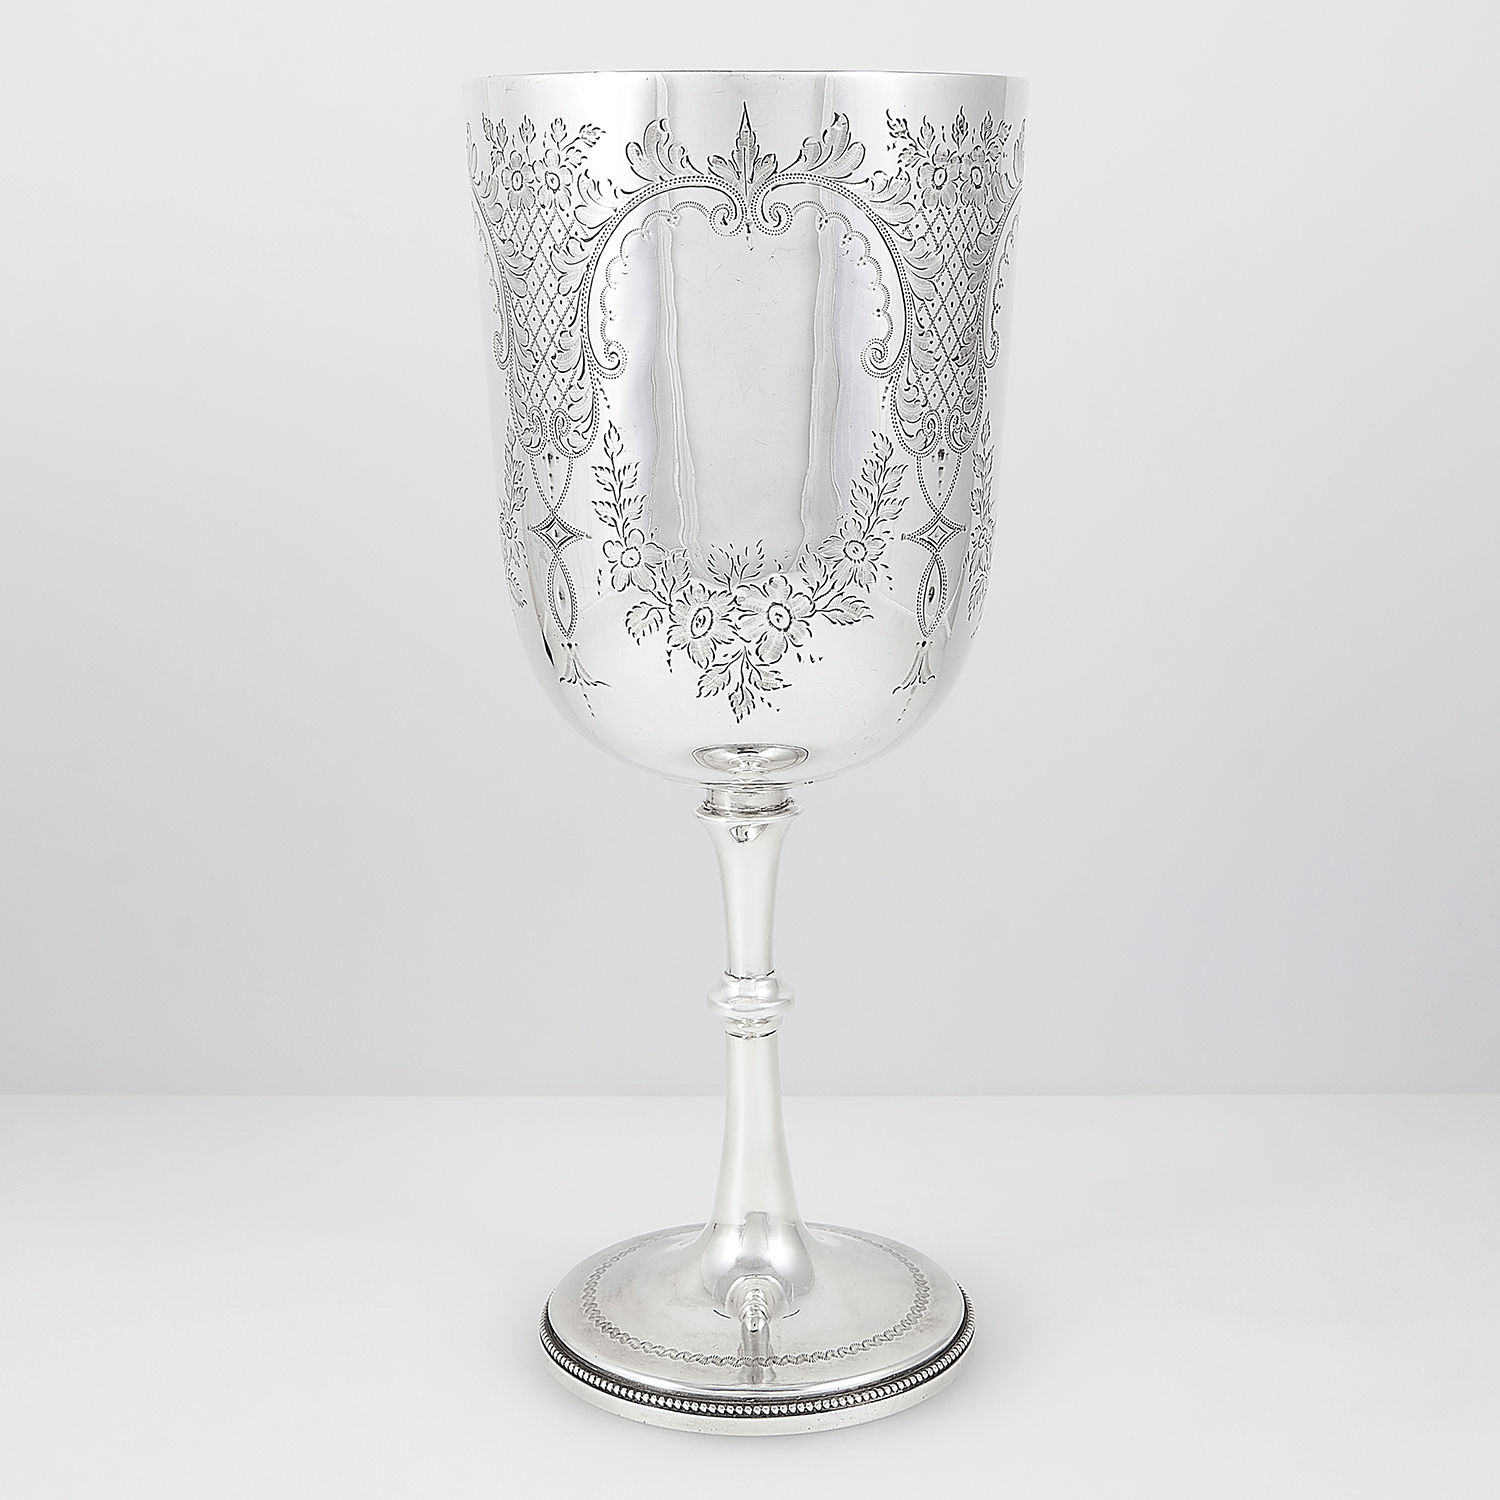 Los 14 - ANTIQUE VICTORIAN STERLING SILVER GOBLET, JACKSON FULLERTON, LONDON 1900 the rounded body with